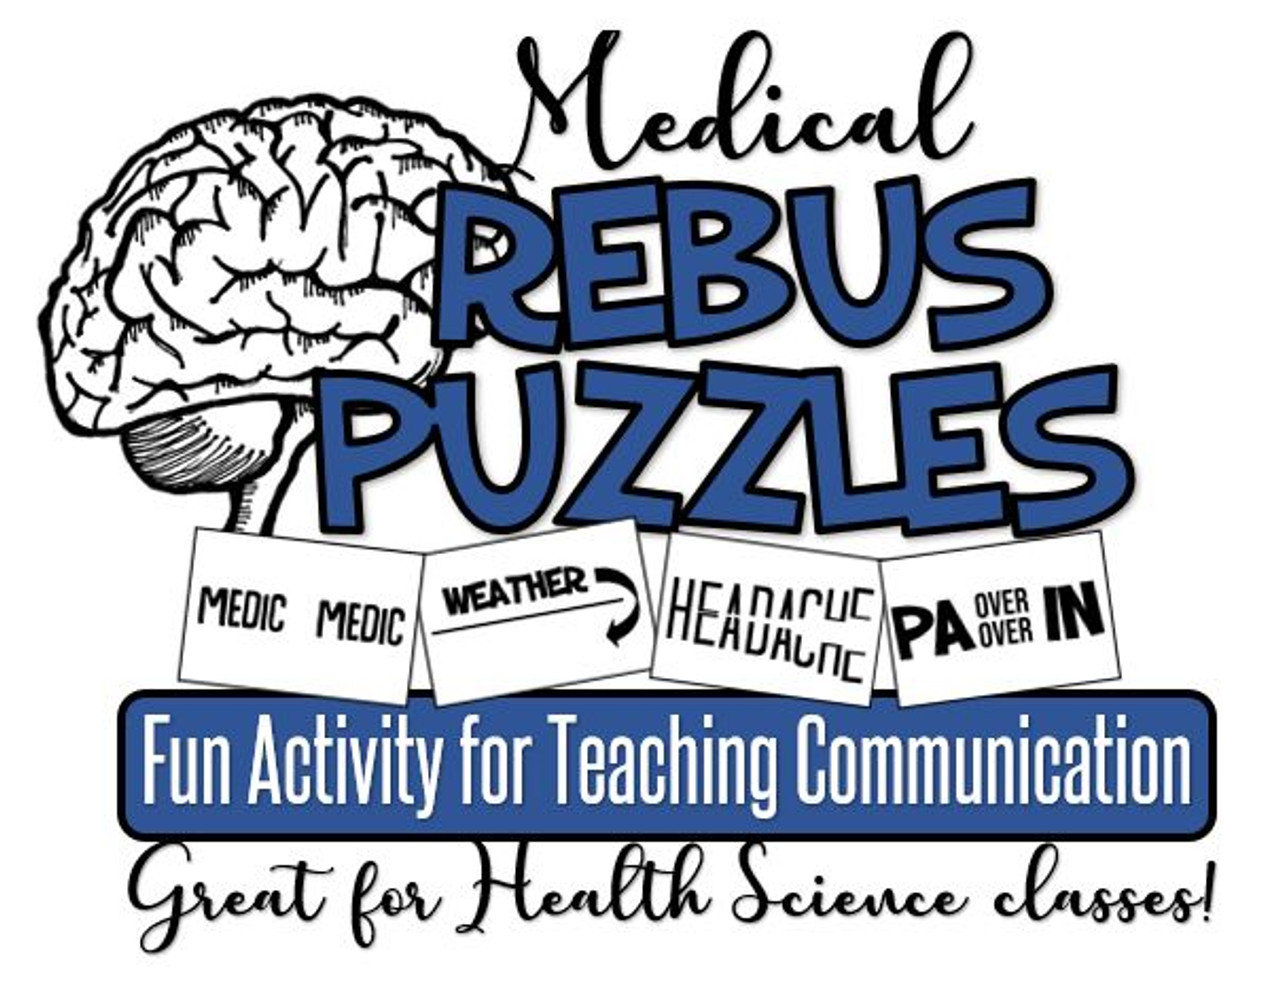 medium resolution of Medical Rebus Puzzles- Great for teaching Communications in Health Science!  - Amped Up Learning